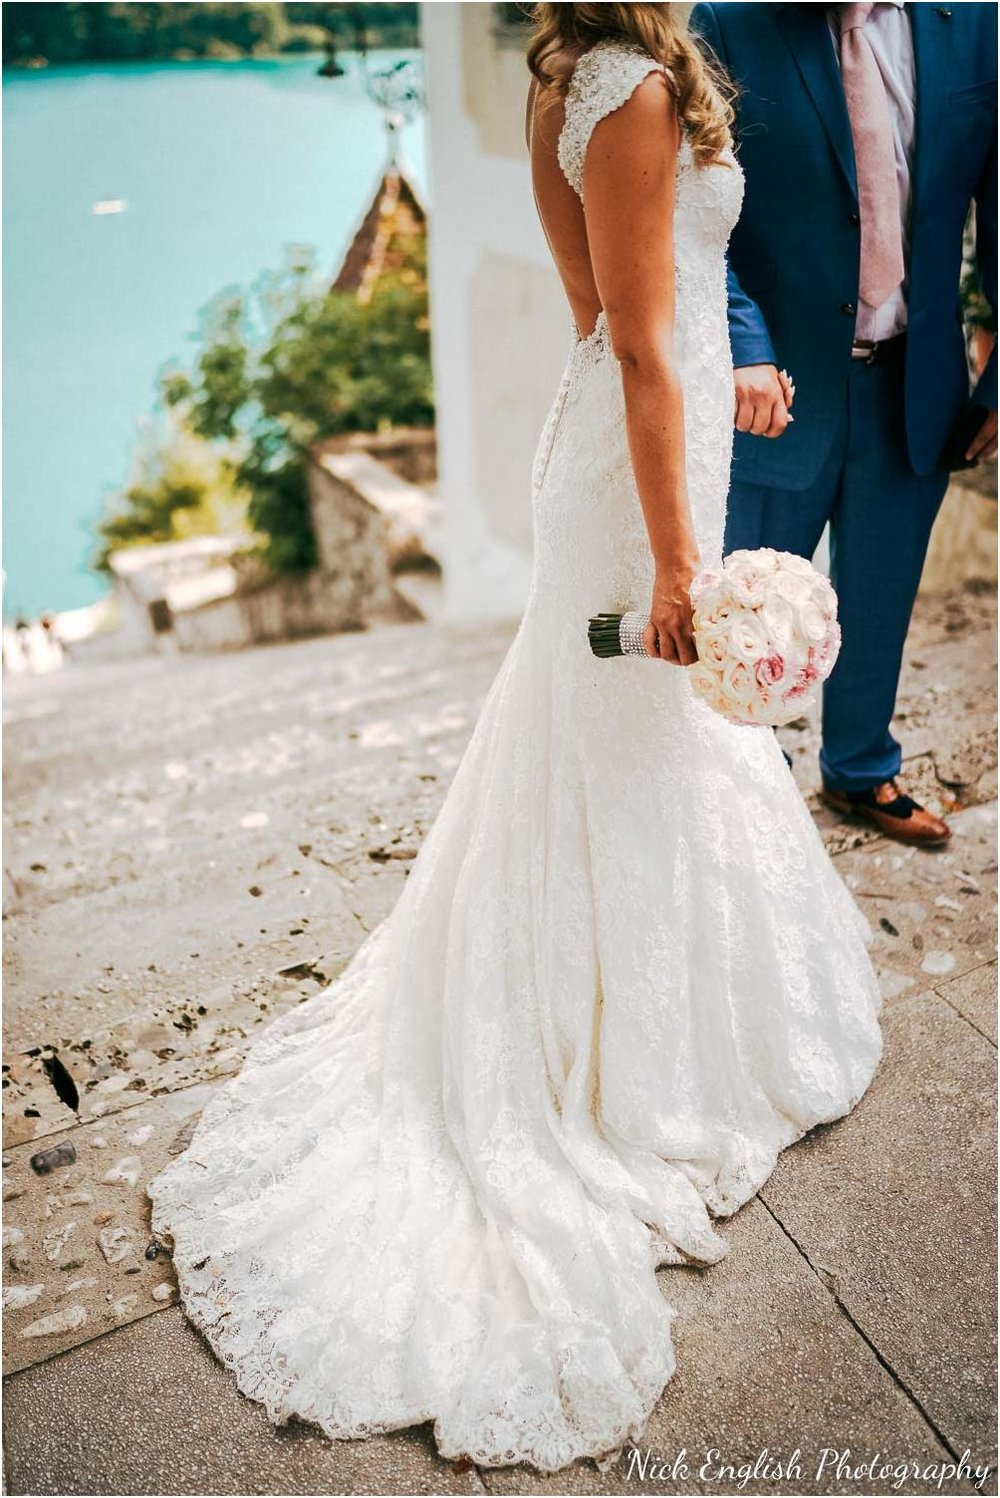 Destination_Wedding_Photographer_Slovenia_Nick_English_Photography-70-13.jpg